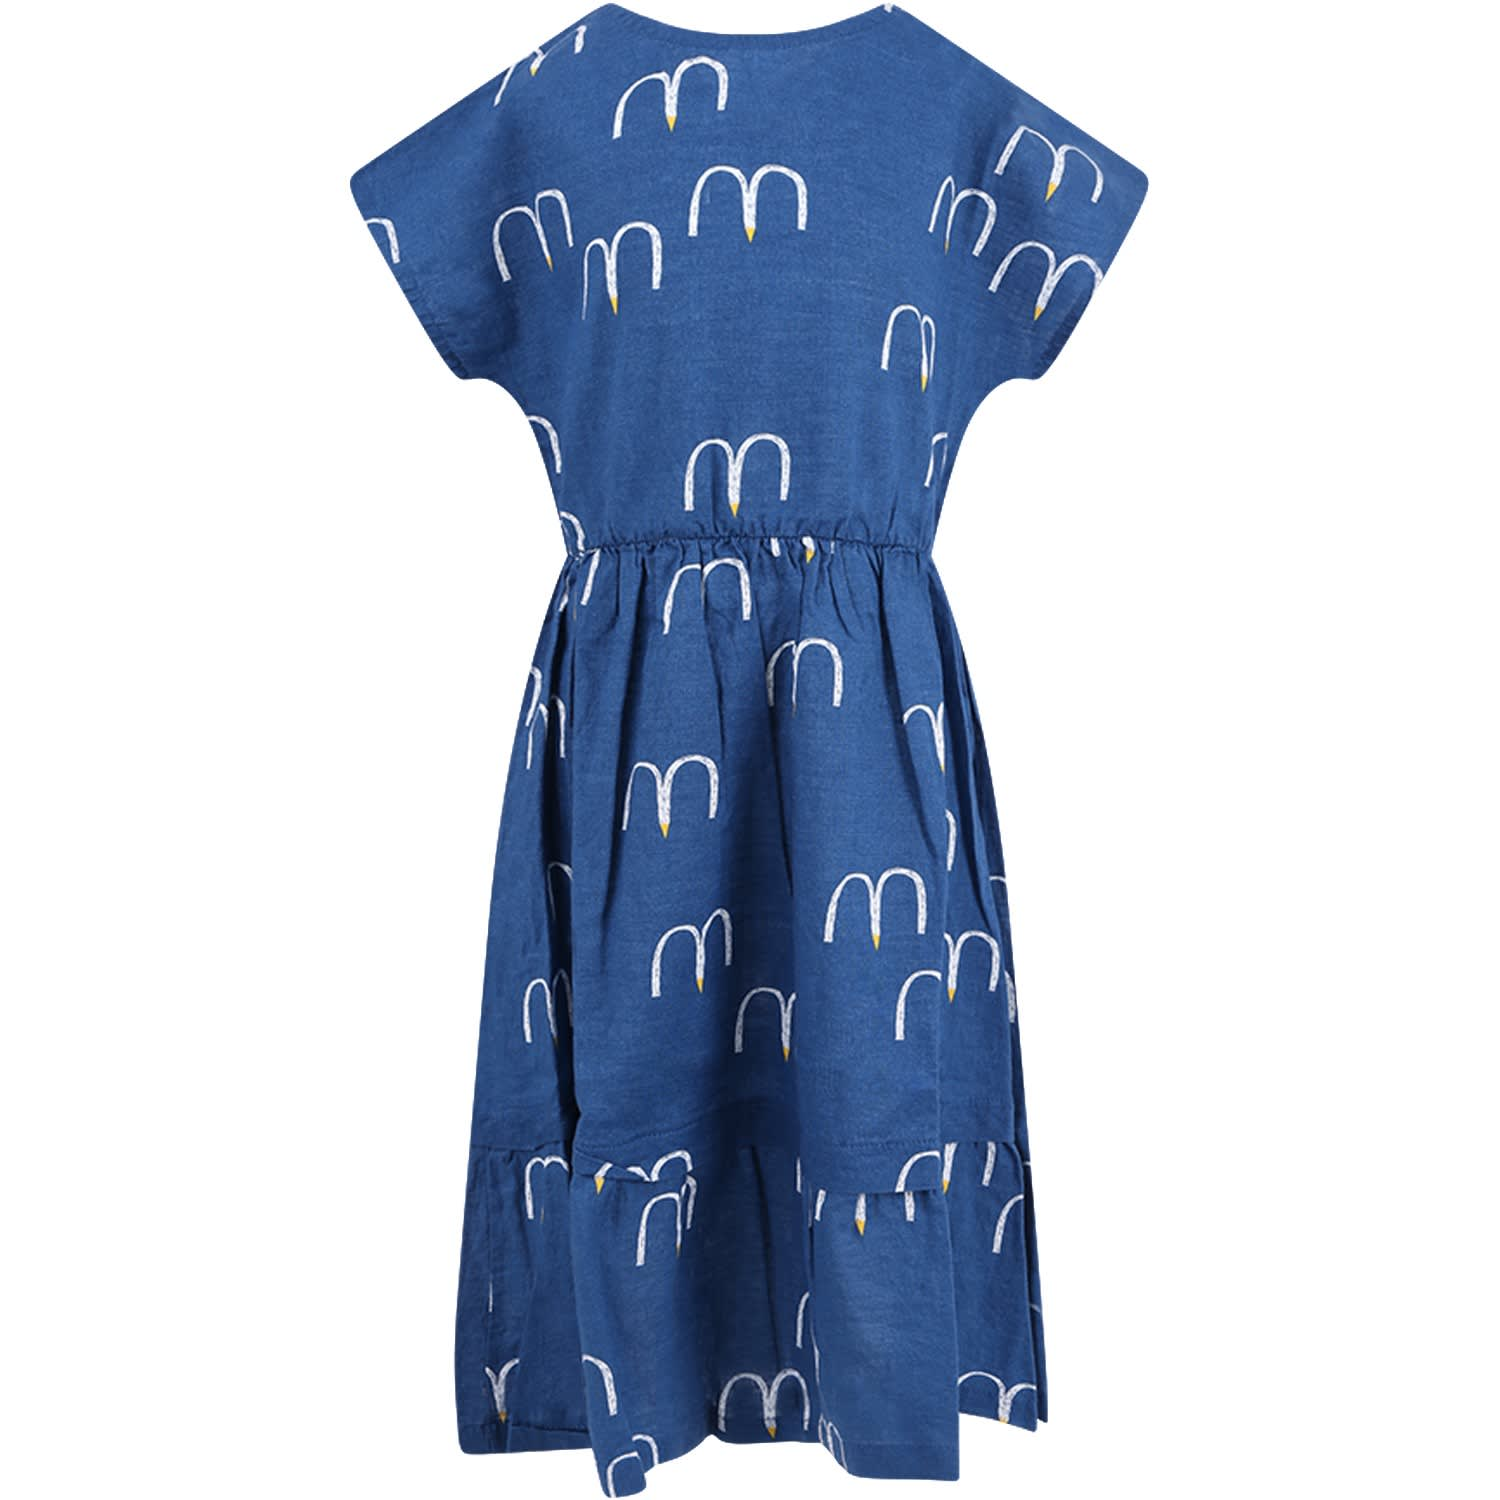 Photo of  Bobo Choses Blue Girl Dress With Seagull- shop Bobo Choses  online sales